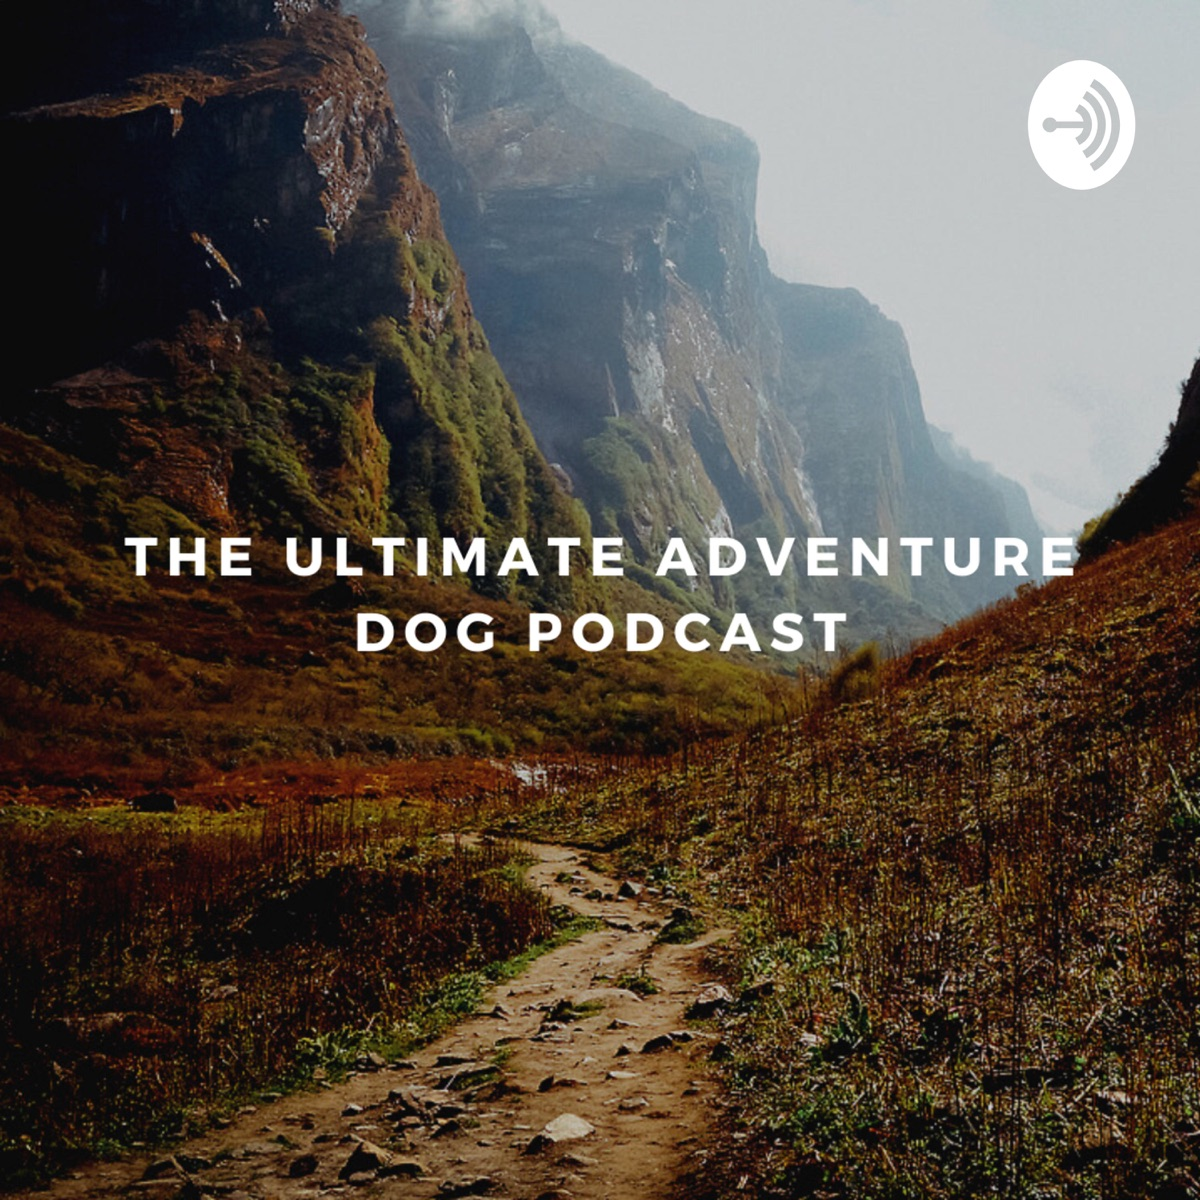 The Ultimate Adventure Dog Podcast